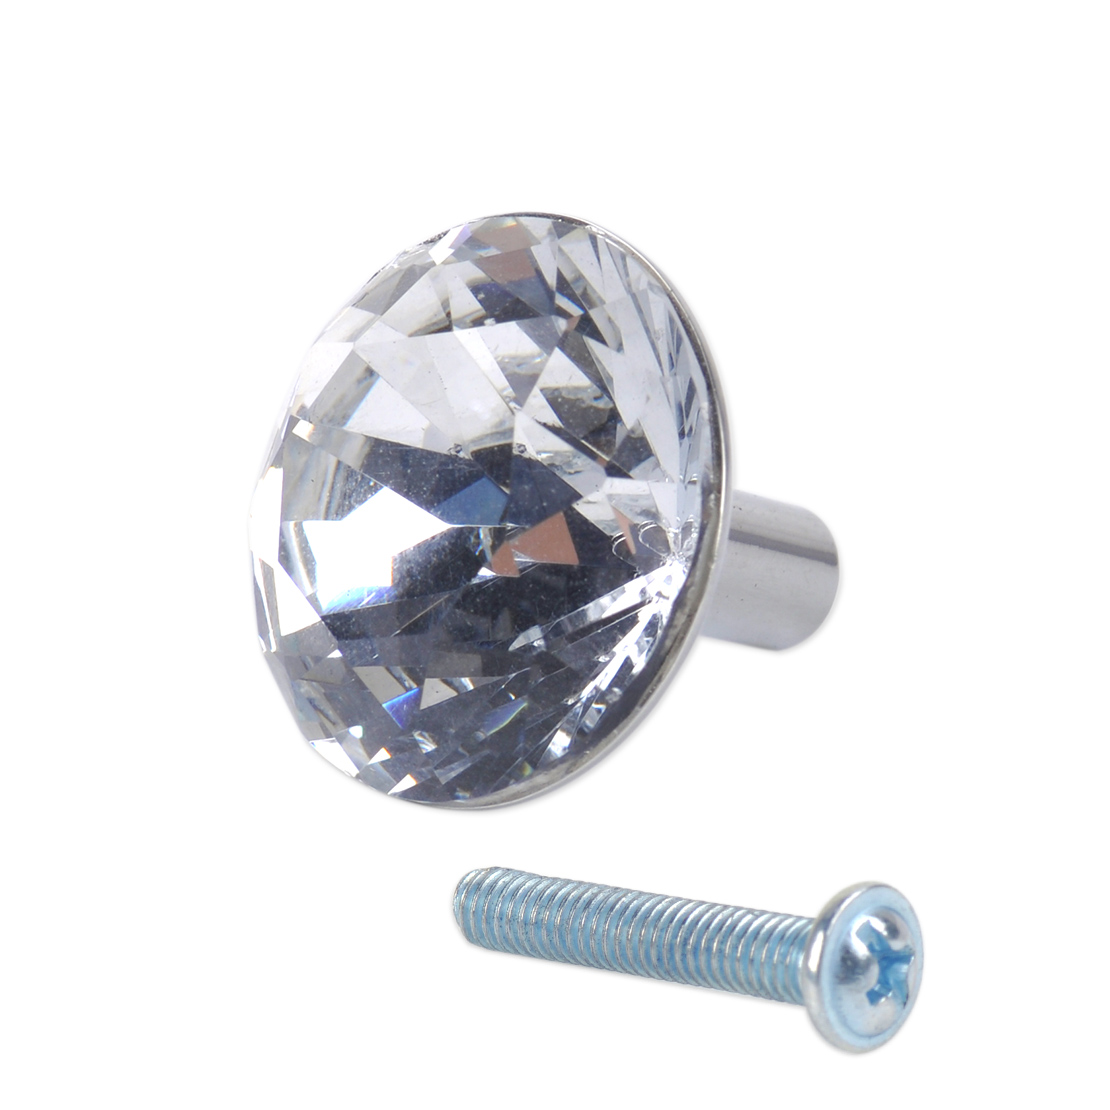 Glass diamond crystal dresser knobs drawer furniture pull handle cabinet door ebay Glass furniture pulls